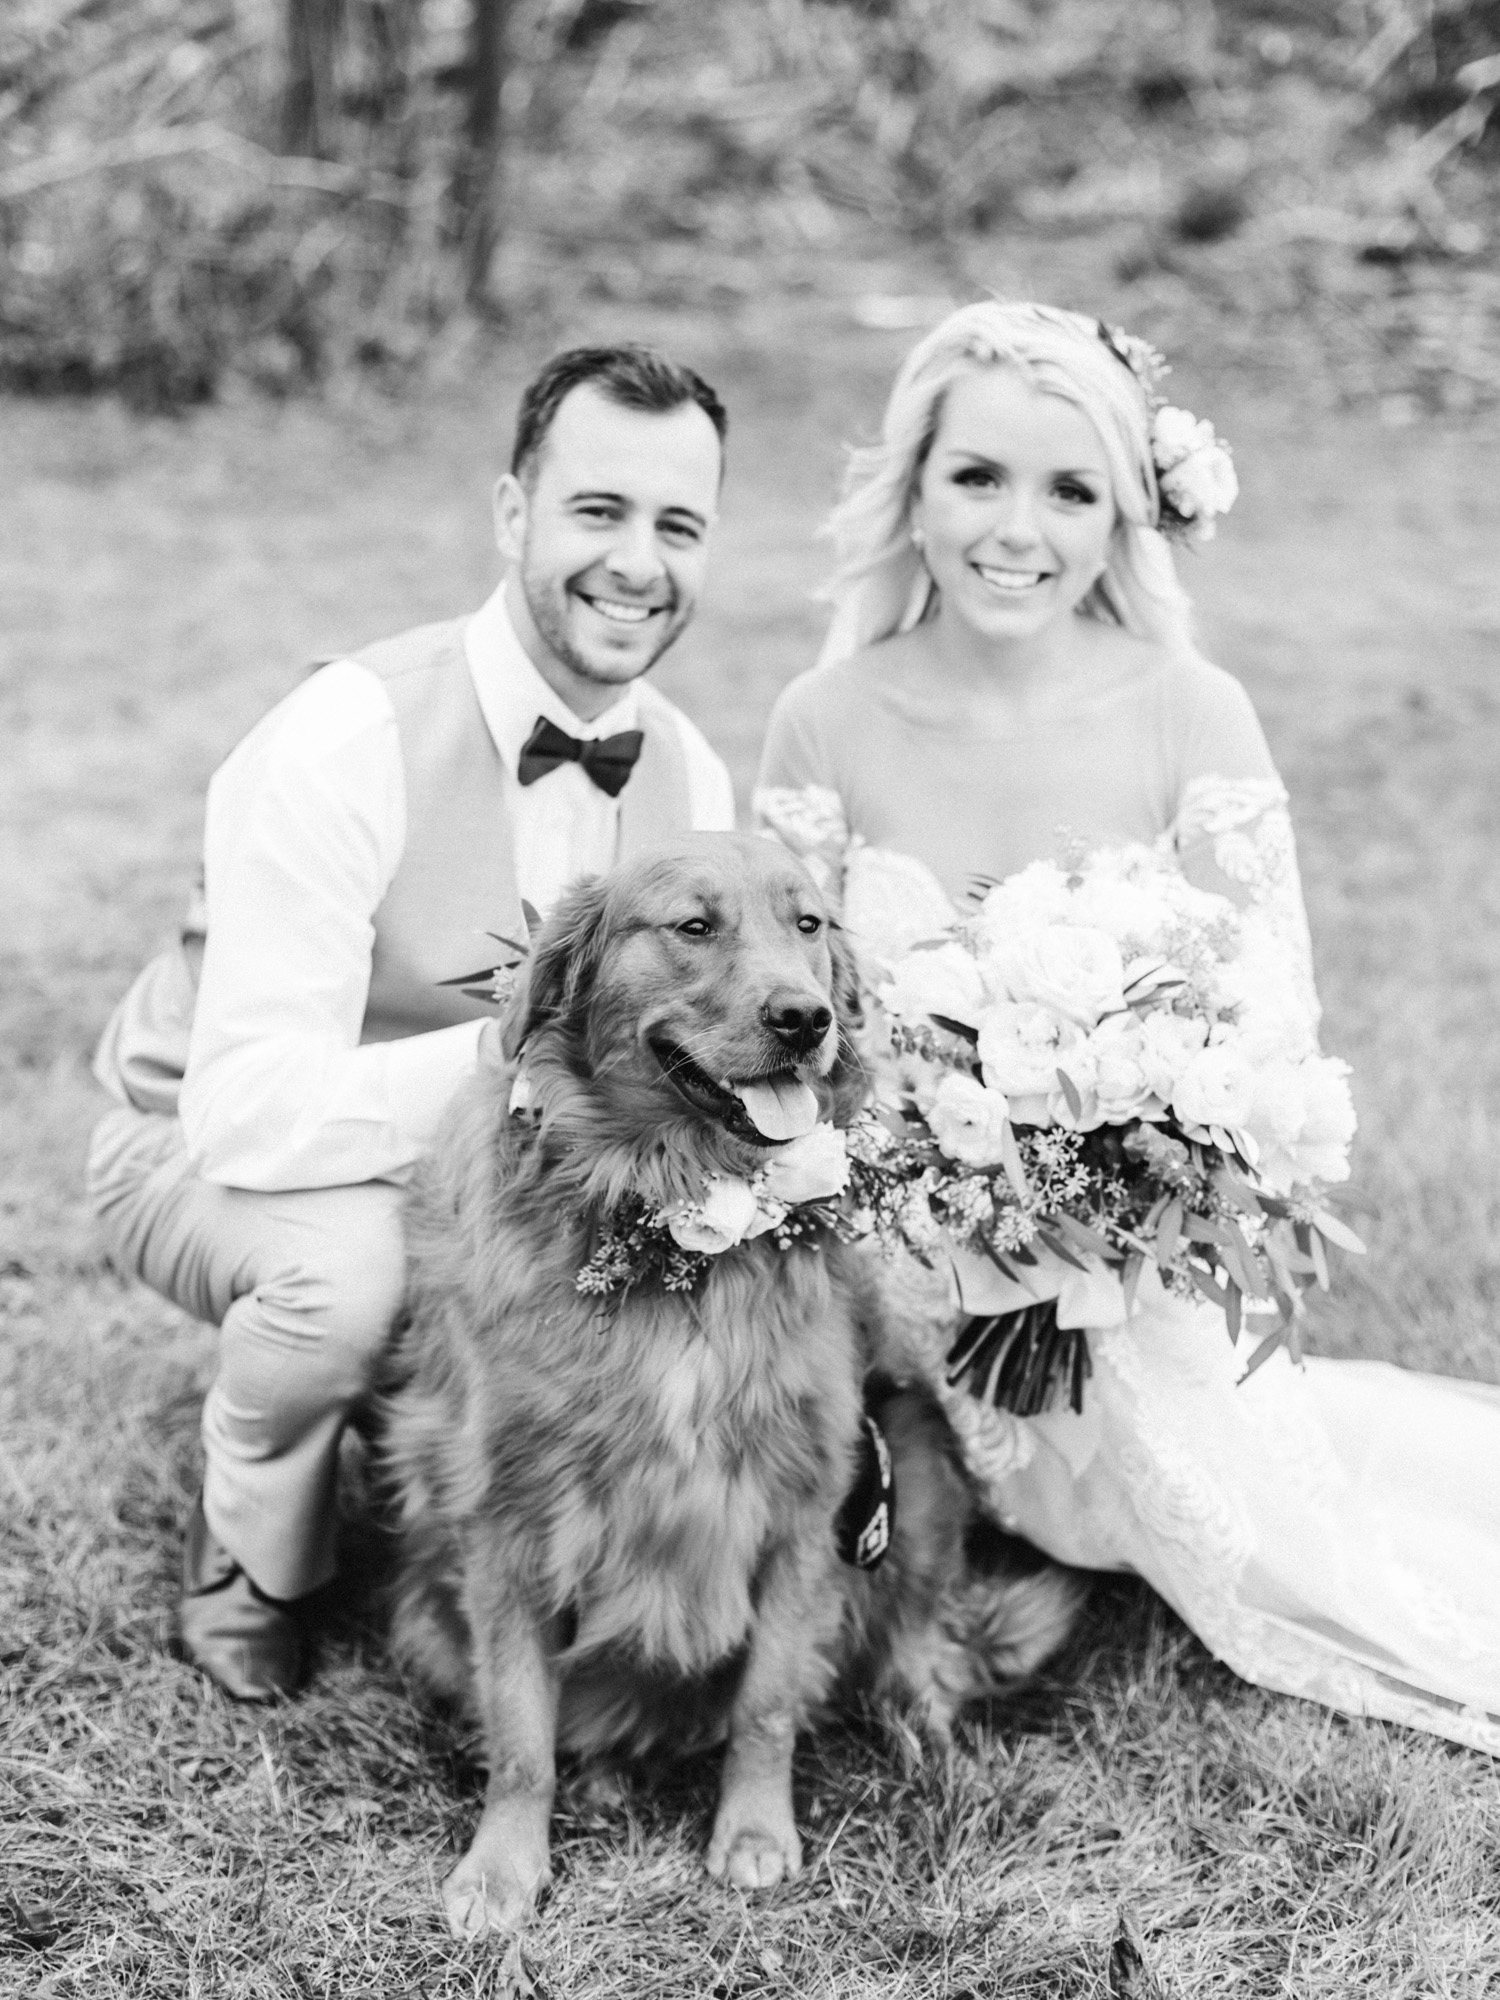 A couple's cute dog wears flowers on their wedding day as they pose for a photo together at The Brick in Indiana